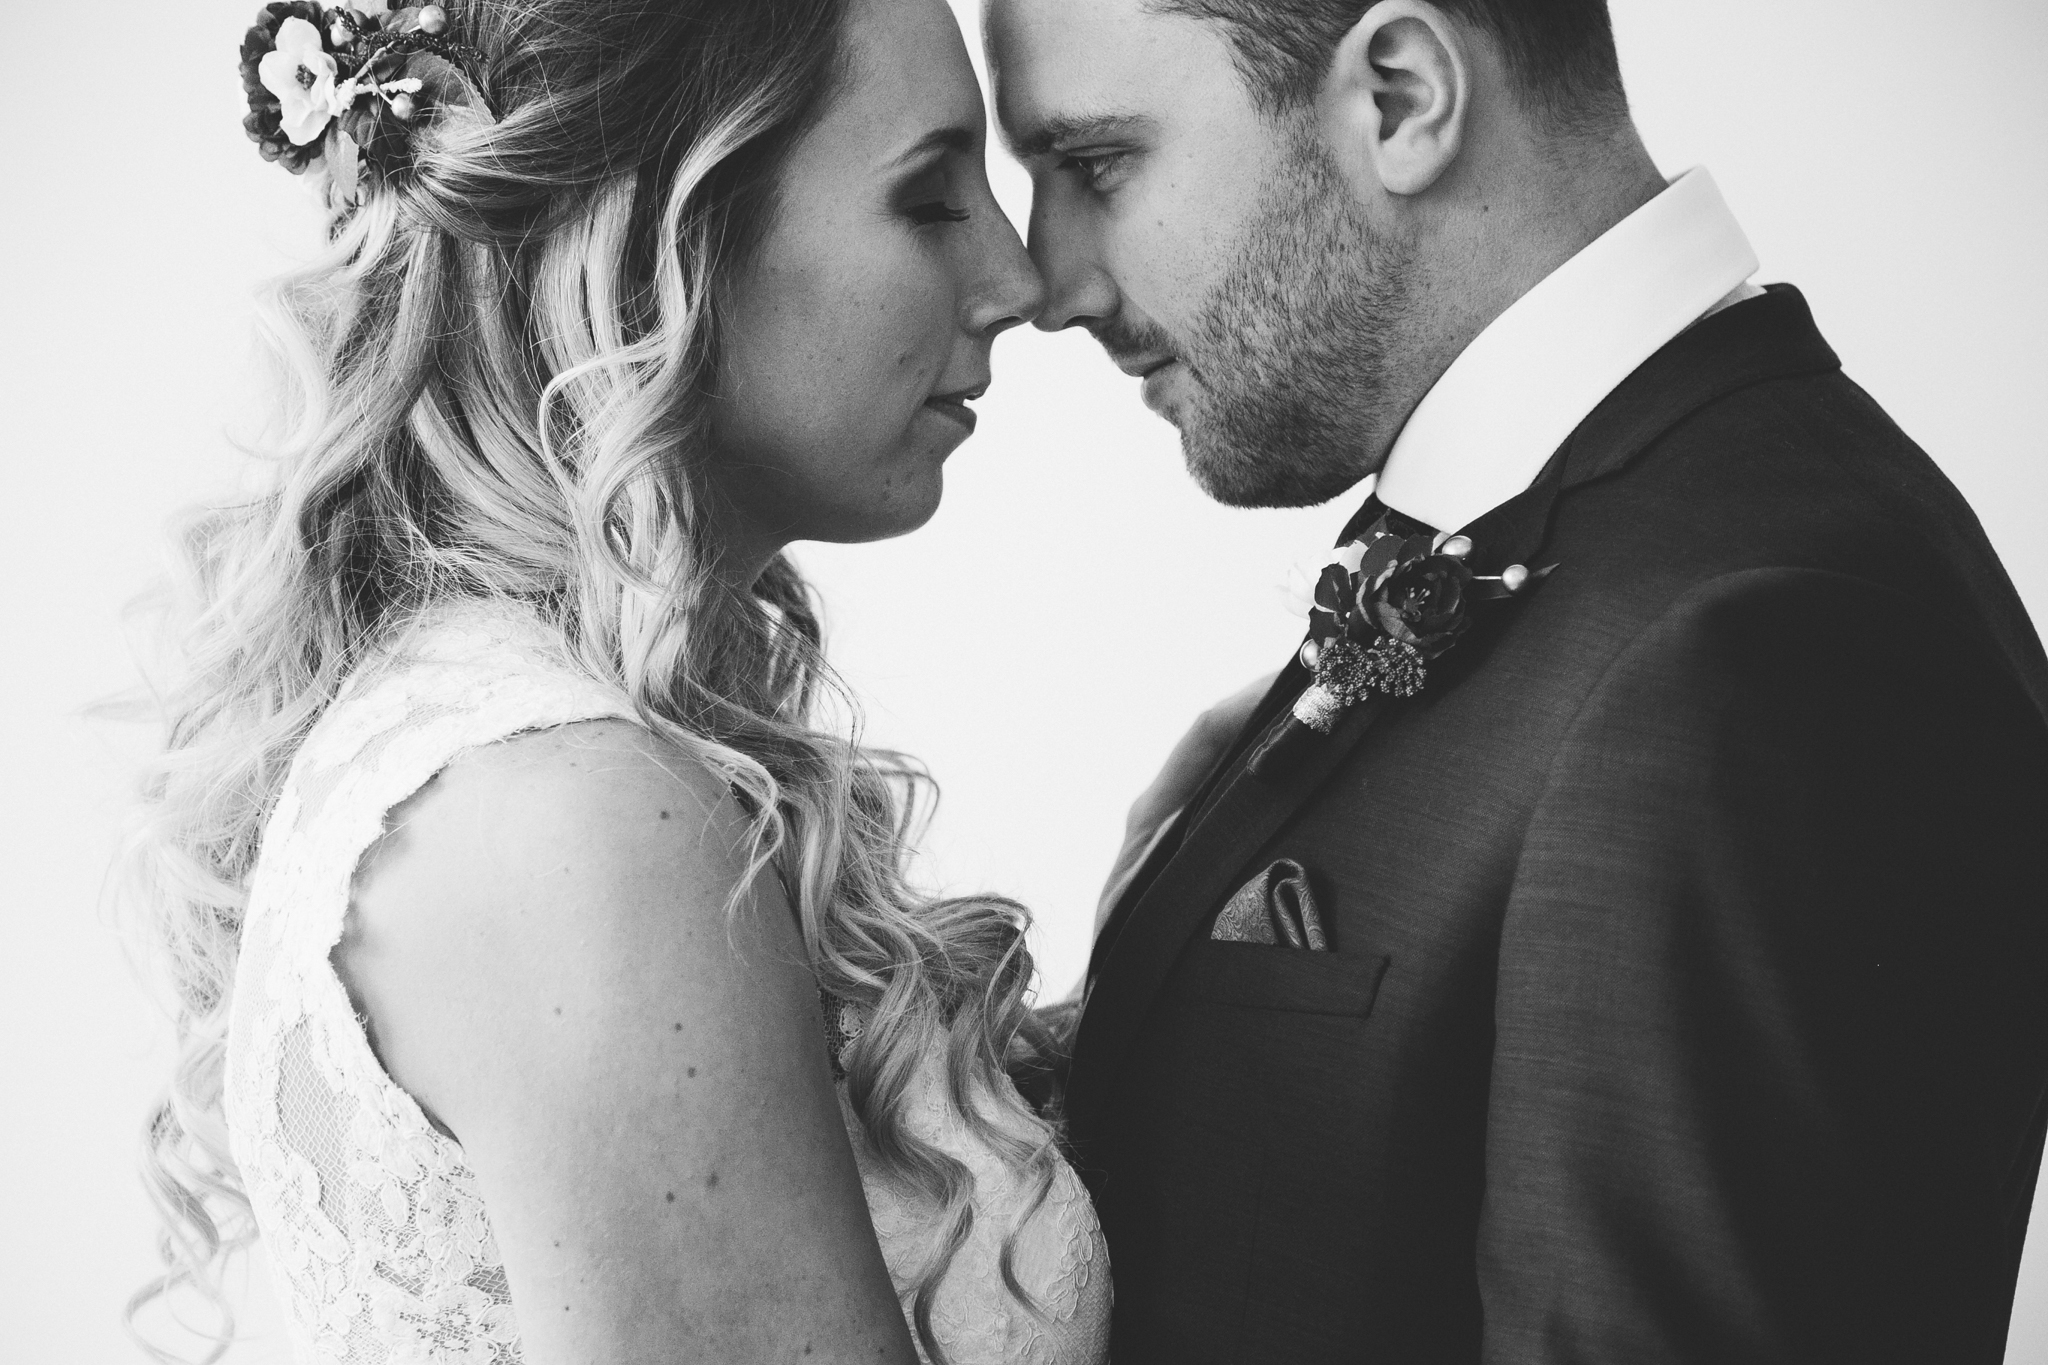 lethbridge-photographer-love-and-be-loved-photography-designed-to-dwell-wedding-katie-kelly-photo-image-picture-14.jpg